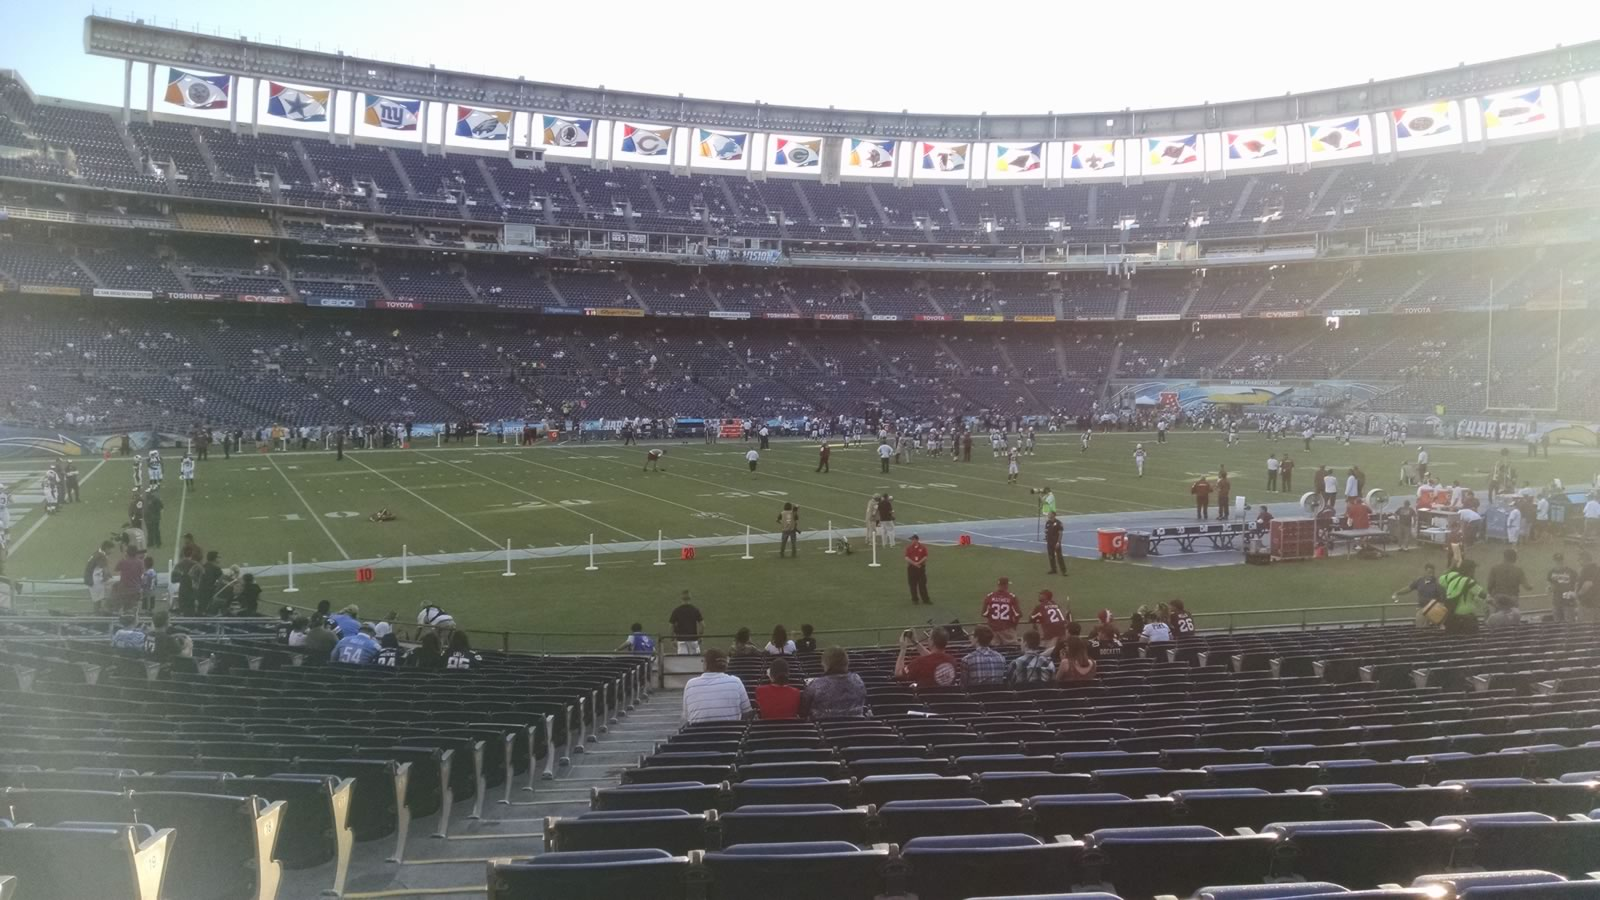 Seat View for SDCCU Stadium Field 2, Row 24, Seat 2